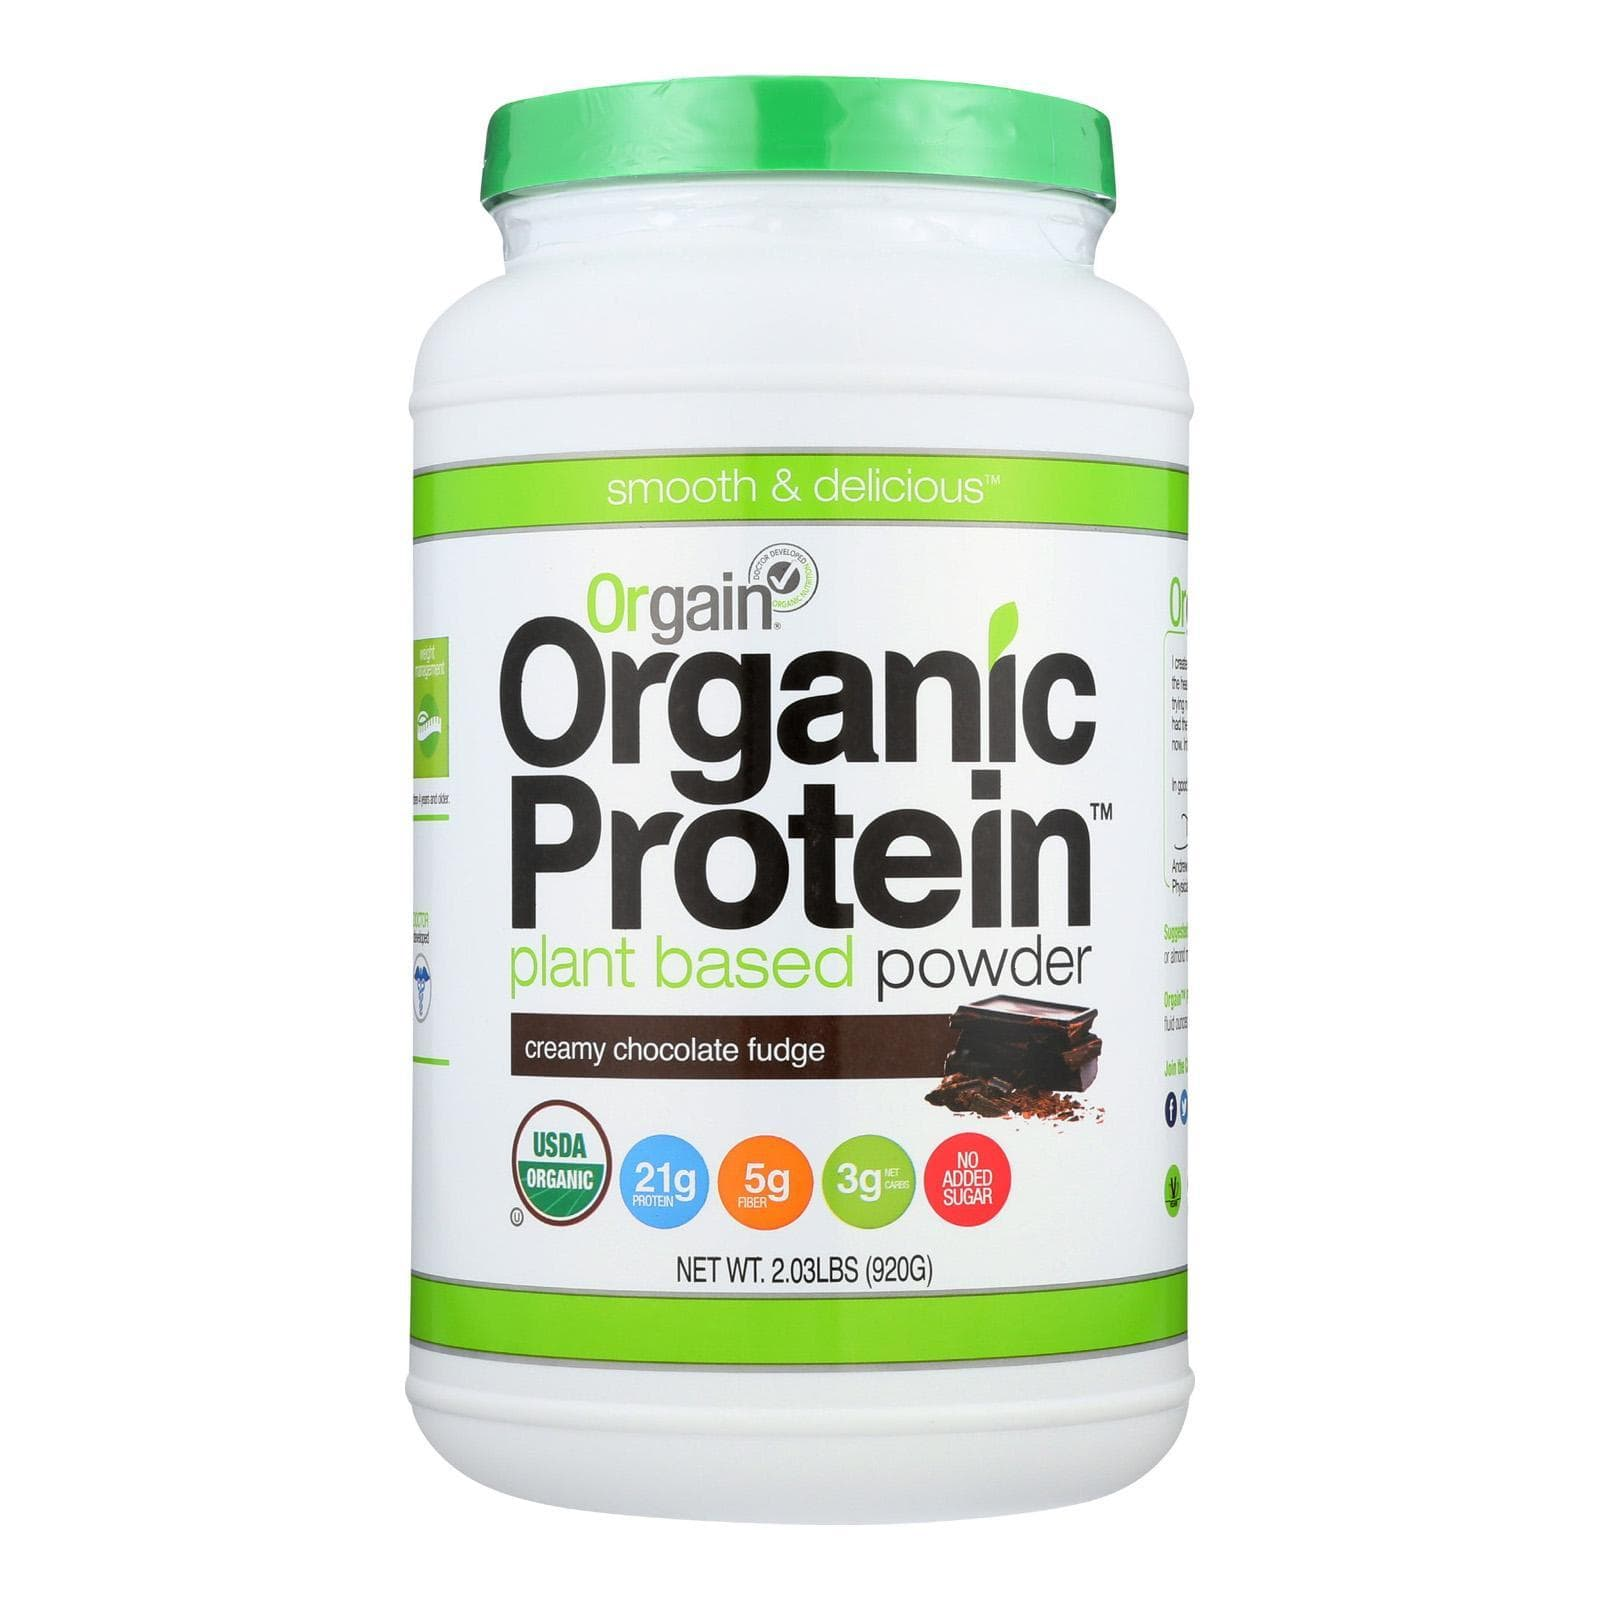 Orgain Sports And Fitness Orgain Organic Protein Powder - Plant Based - Creamy Chocolate Fudge - 2.03 Lb